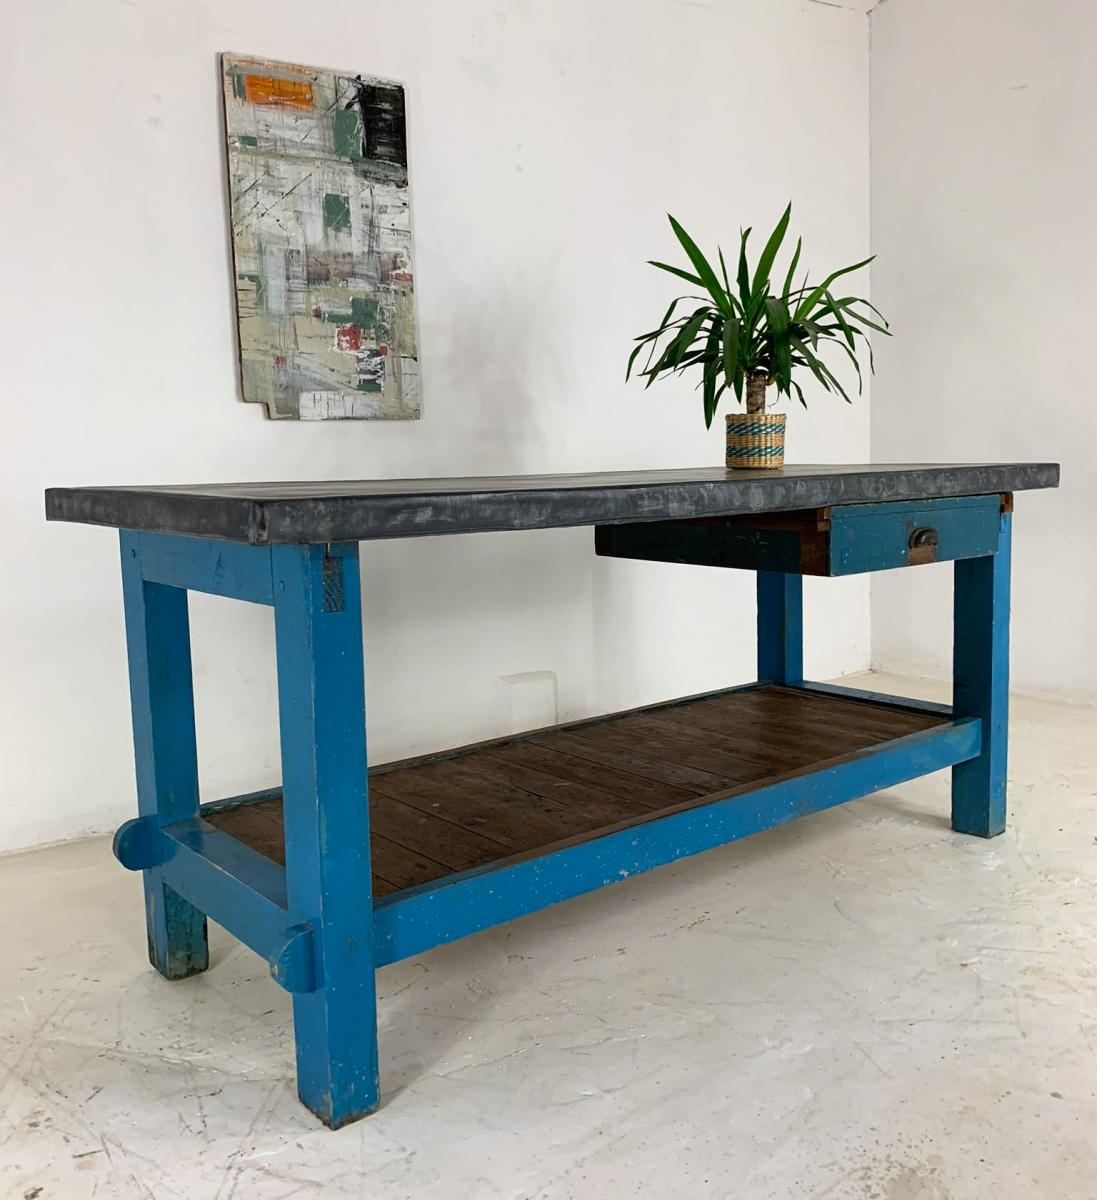 Vintage Industrial Painted Pine 'Potting Board' Table Workbench with Zinc Top